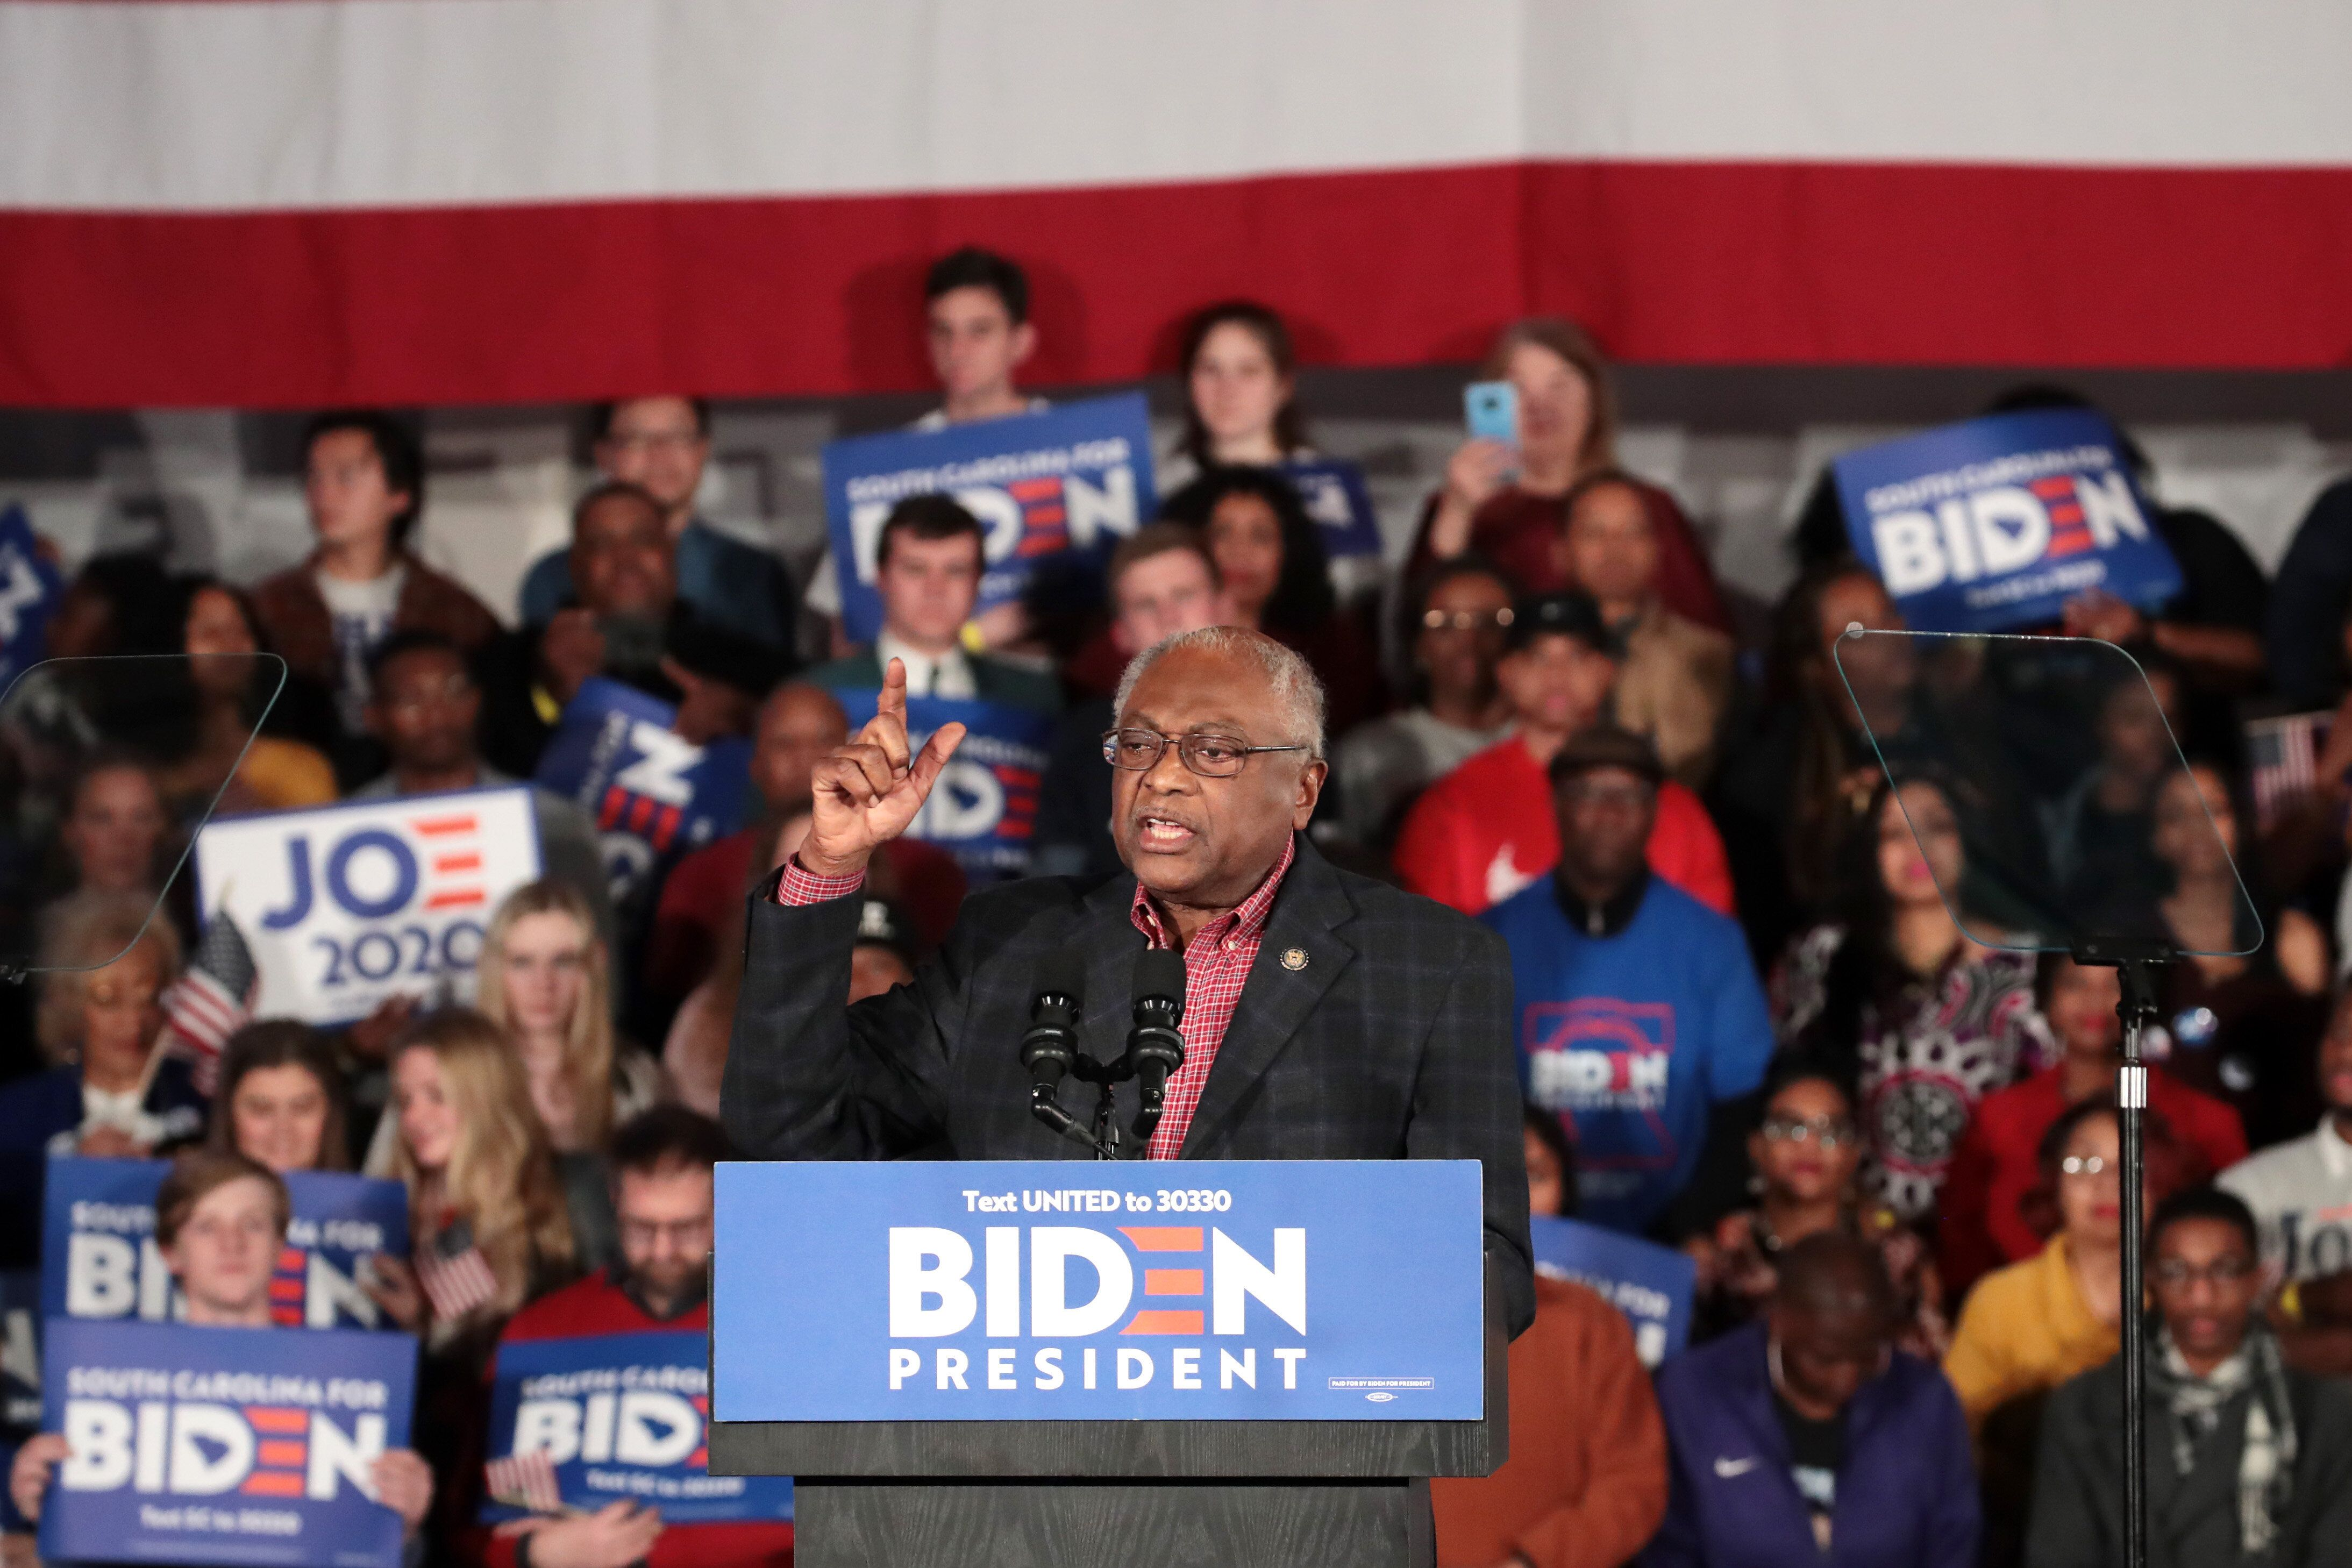 Rep. Jim Clyburn (D-S.C.) endorsed President Joe Biden ahead of the South Carolina primary. He now wants Biden to uphold his